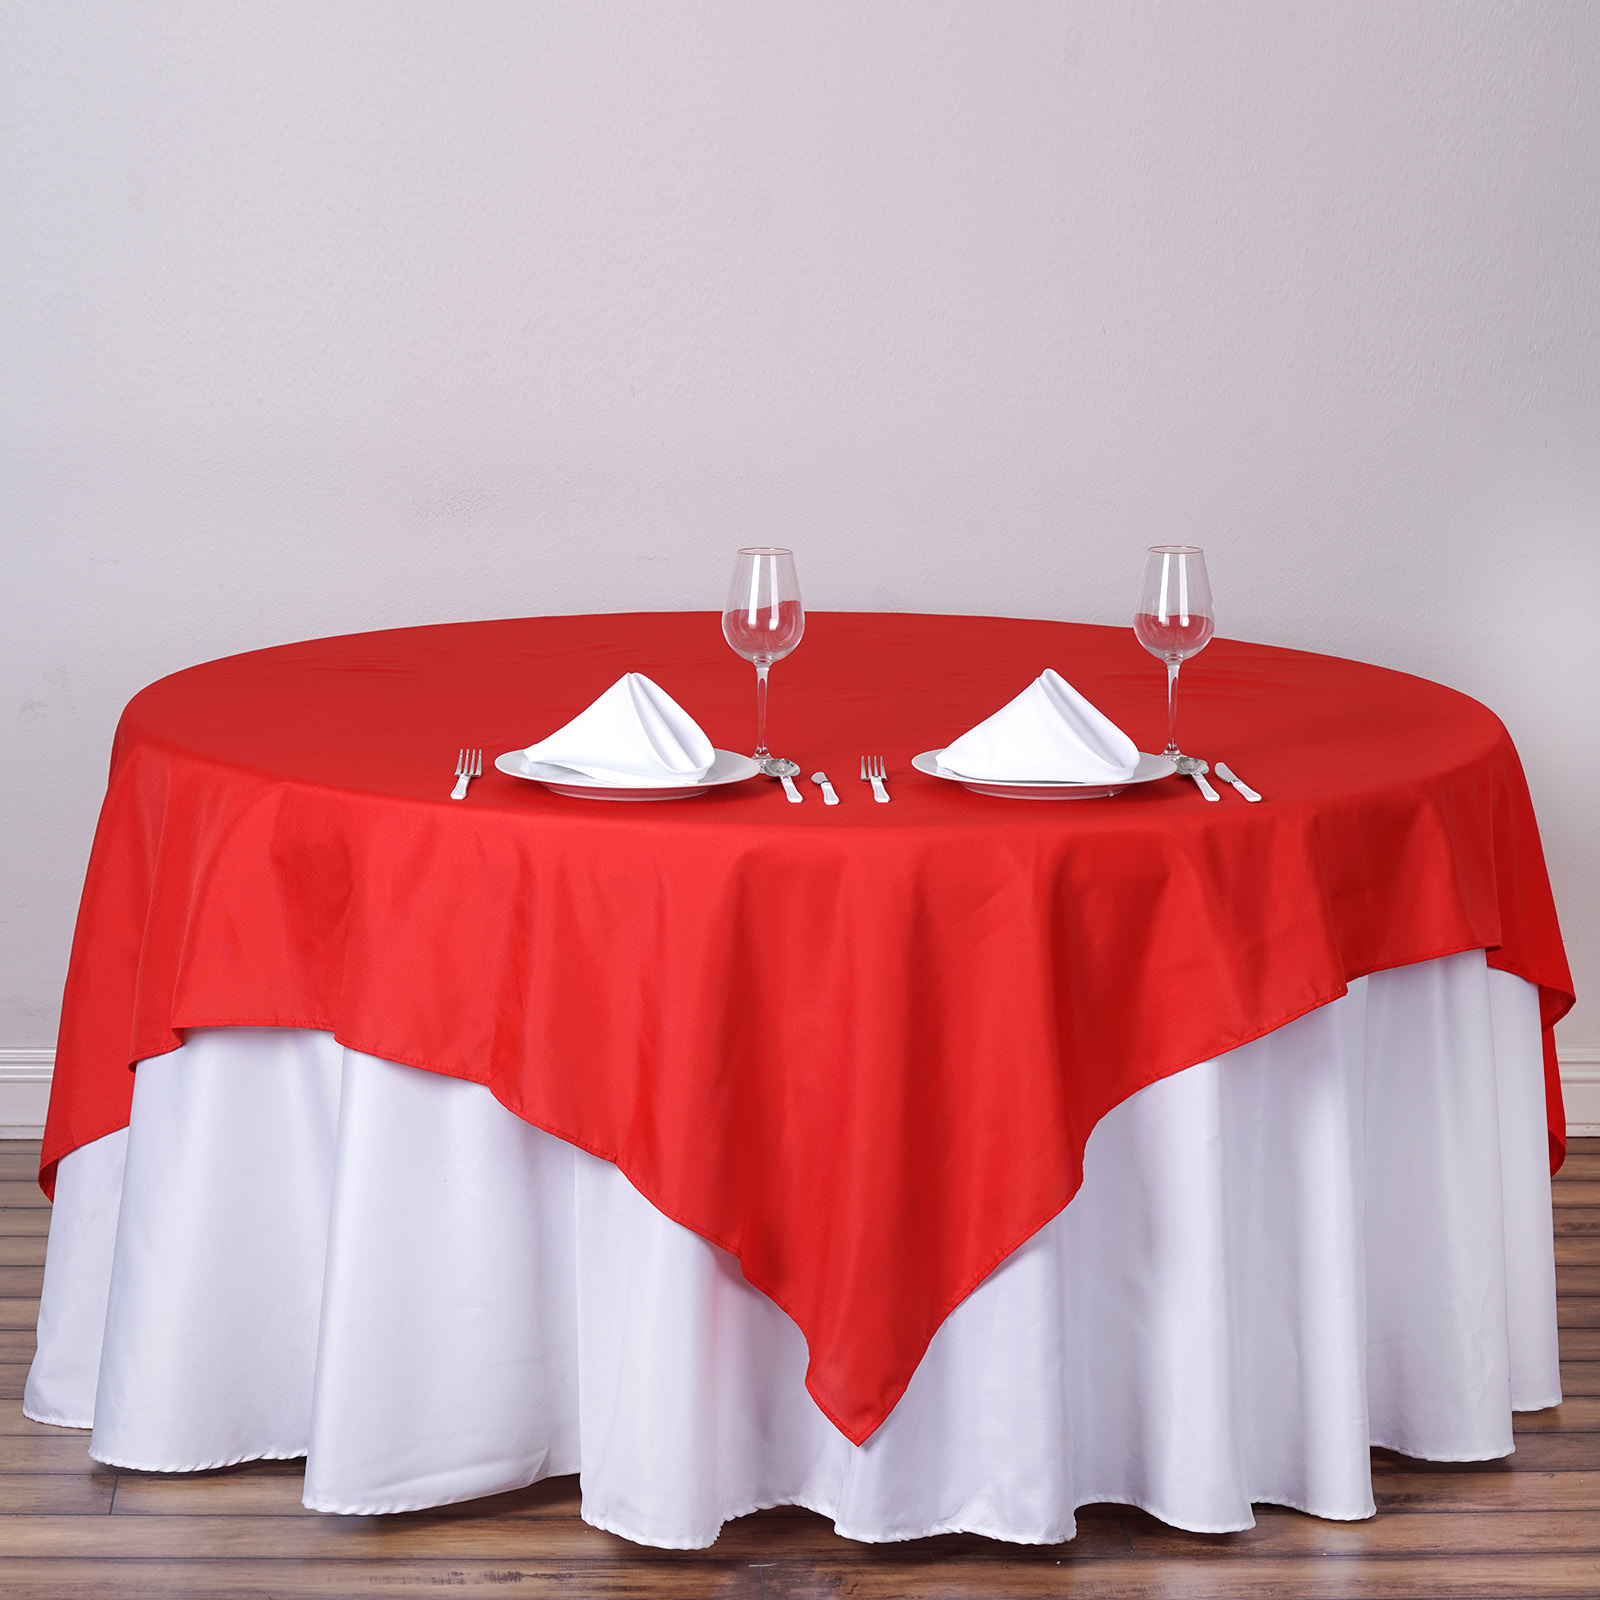 """BalsaCircle 70"""" x 70"""" Square Polyester Tablecloth Table Covers for Party Wedding... by BalsaCircle"""